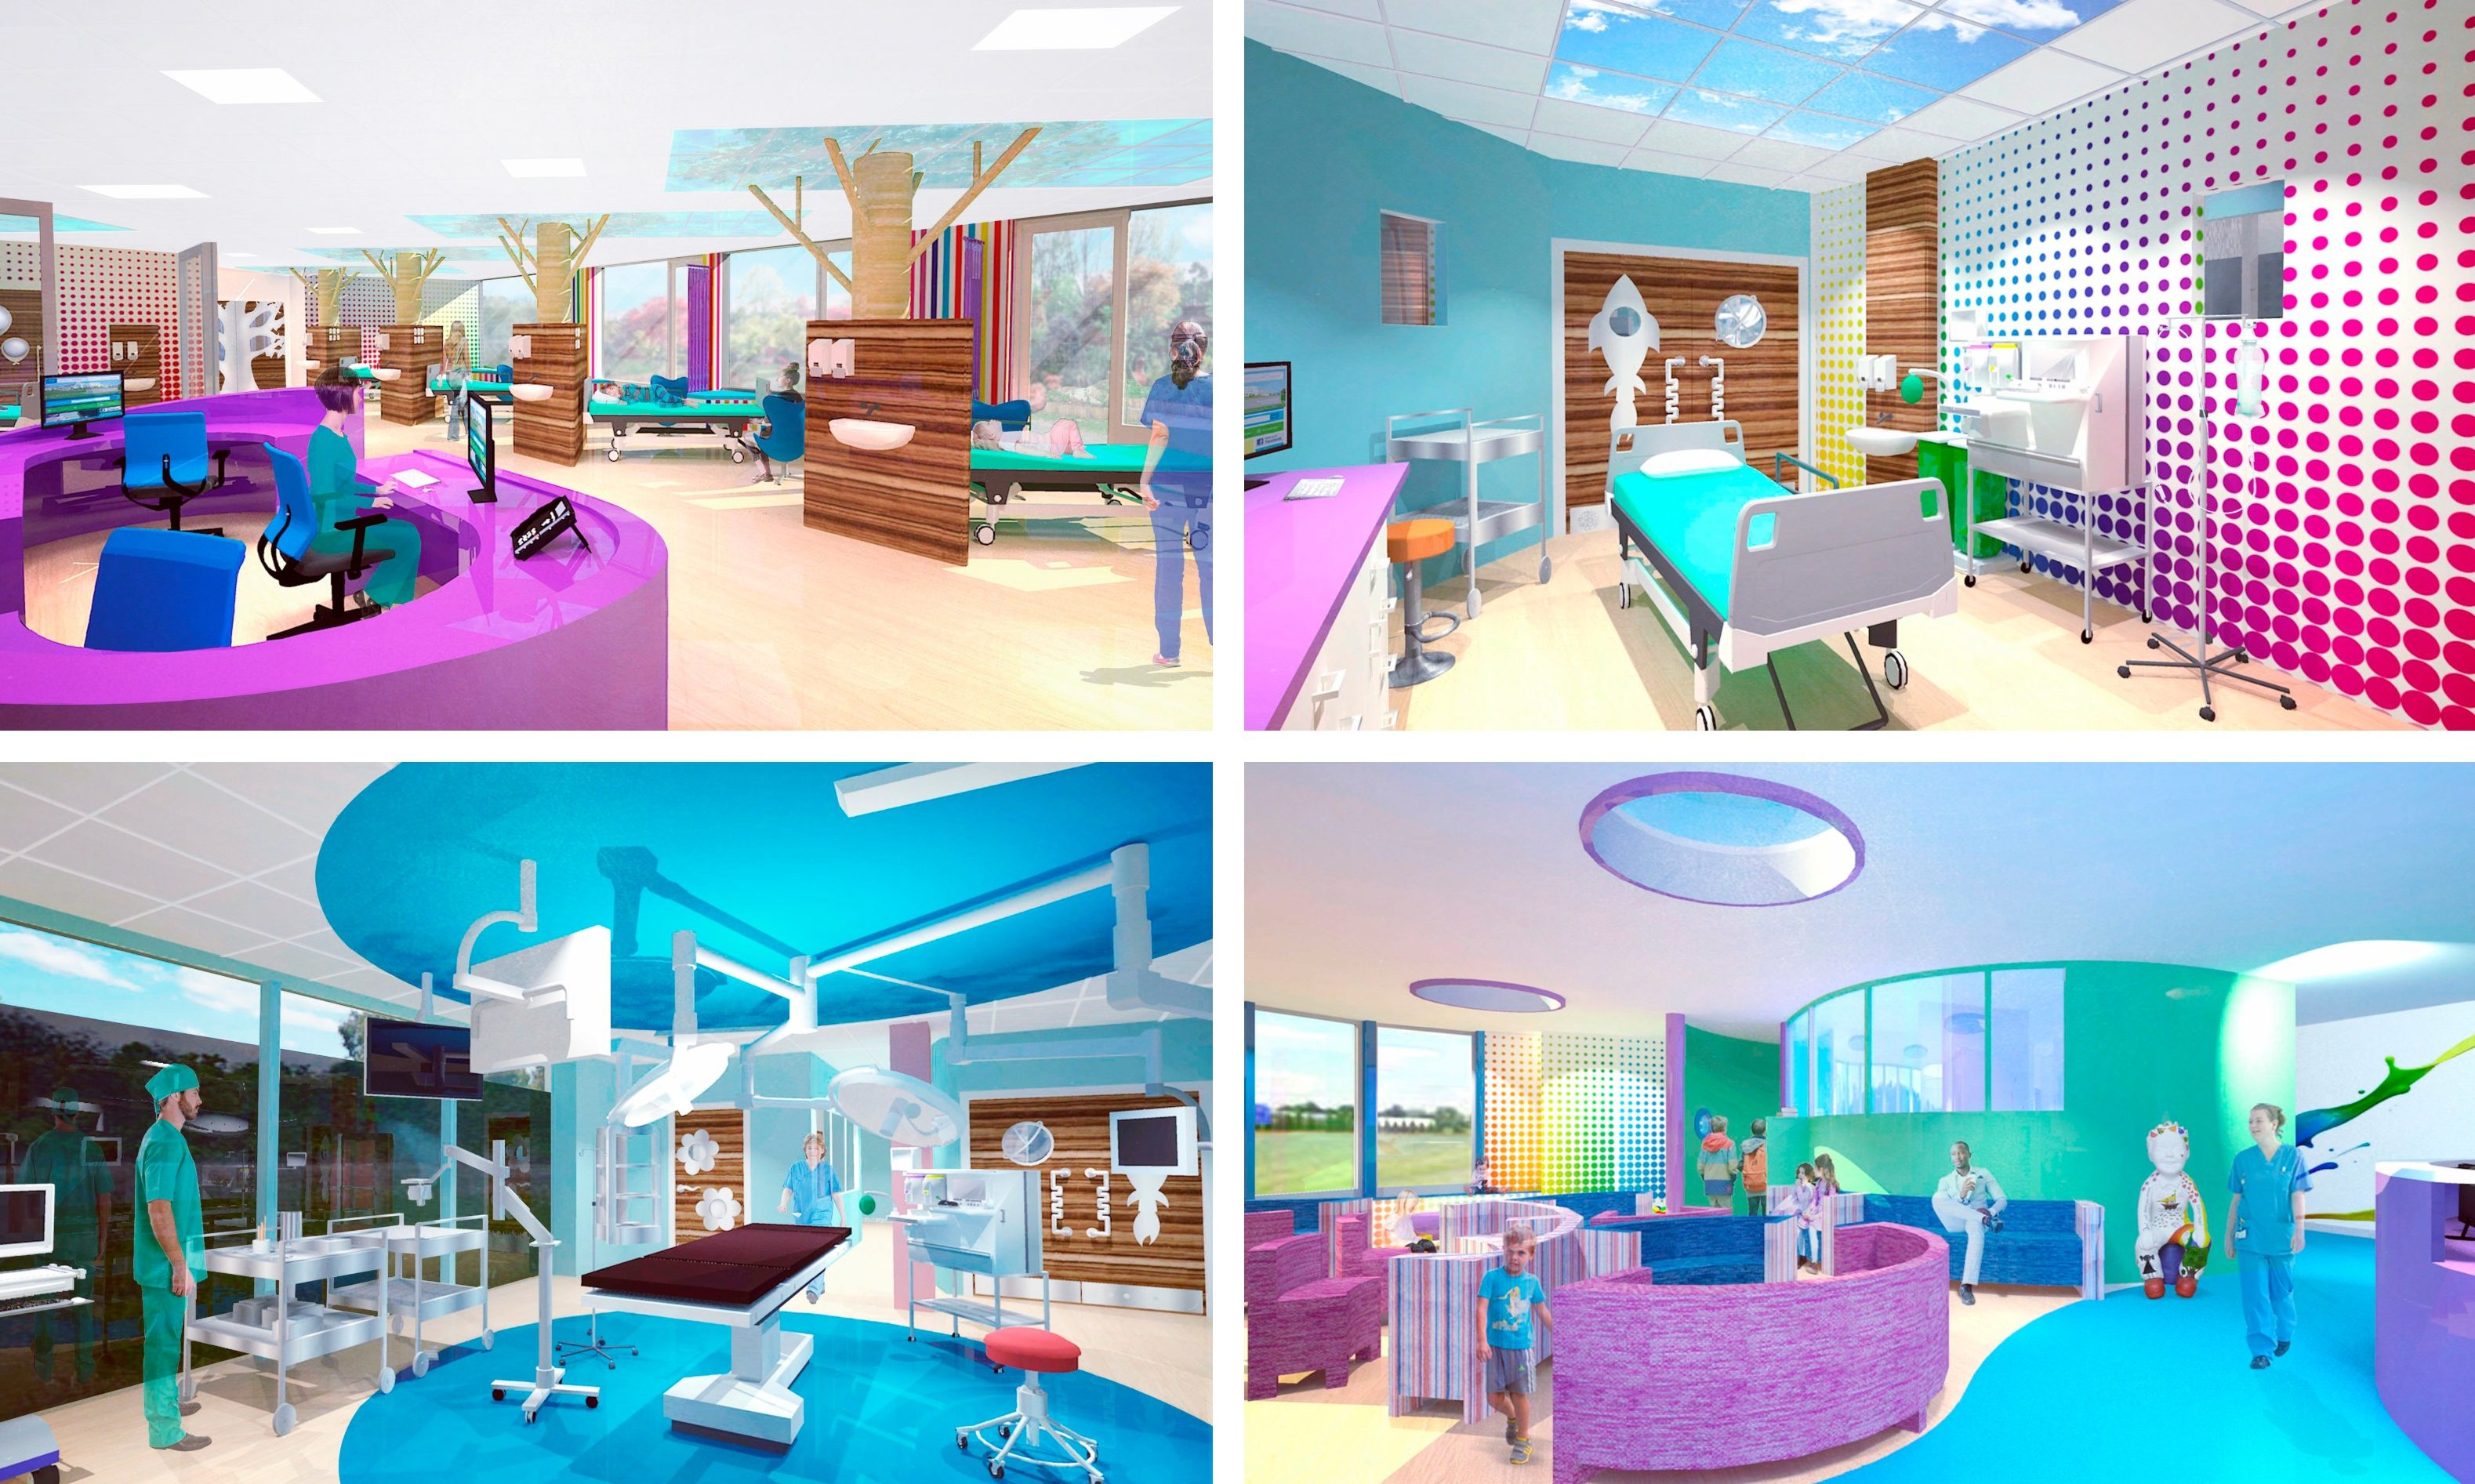 Artist's impressions of the twin operating theatre being built by NHS Tayside and the Archie Foundation.